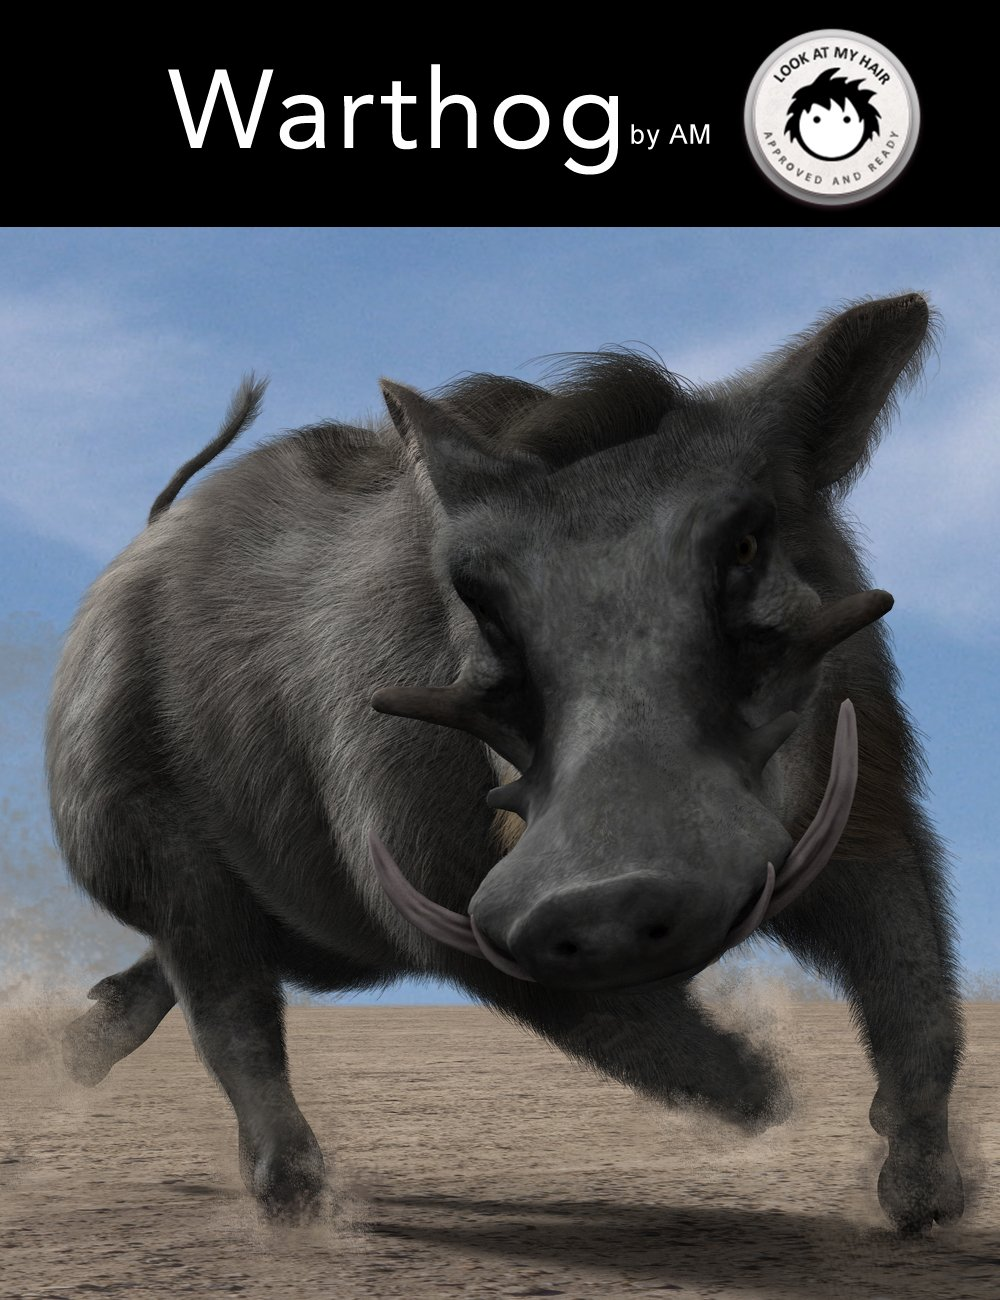 Warthog by AM by: Alessandro_AM, 3D Models by Daz 3D